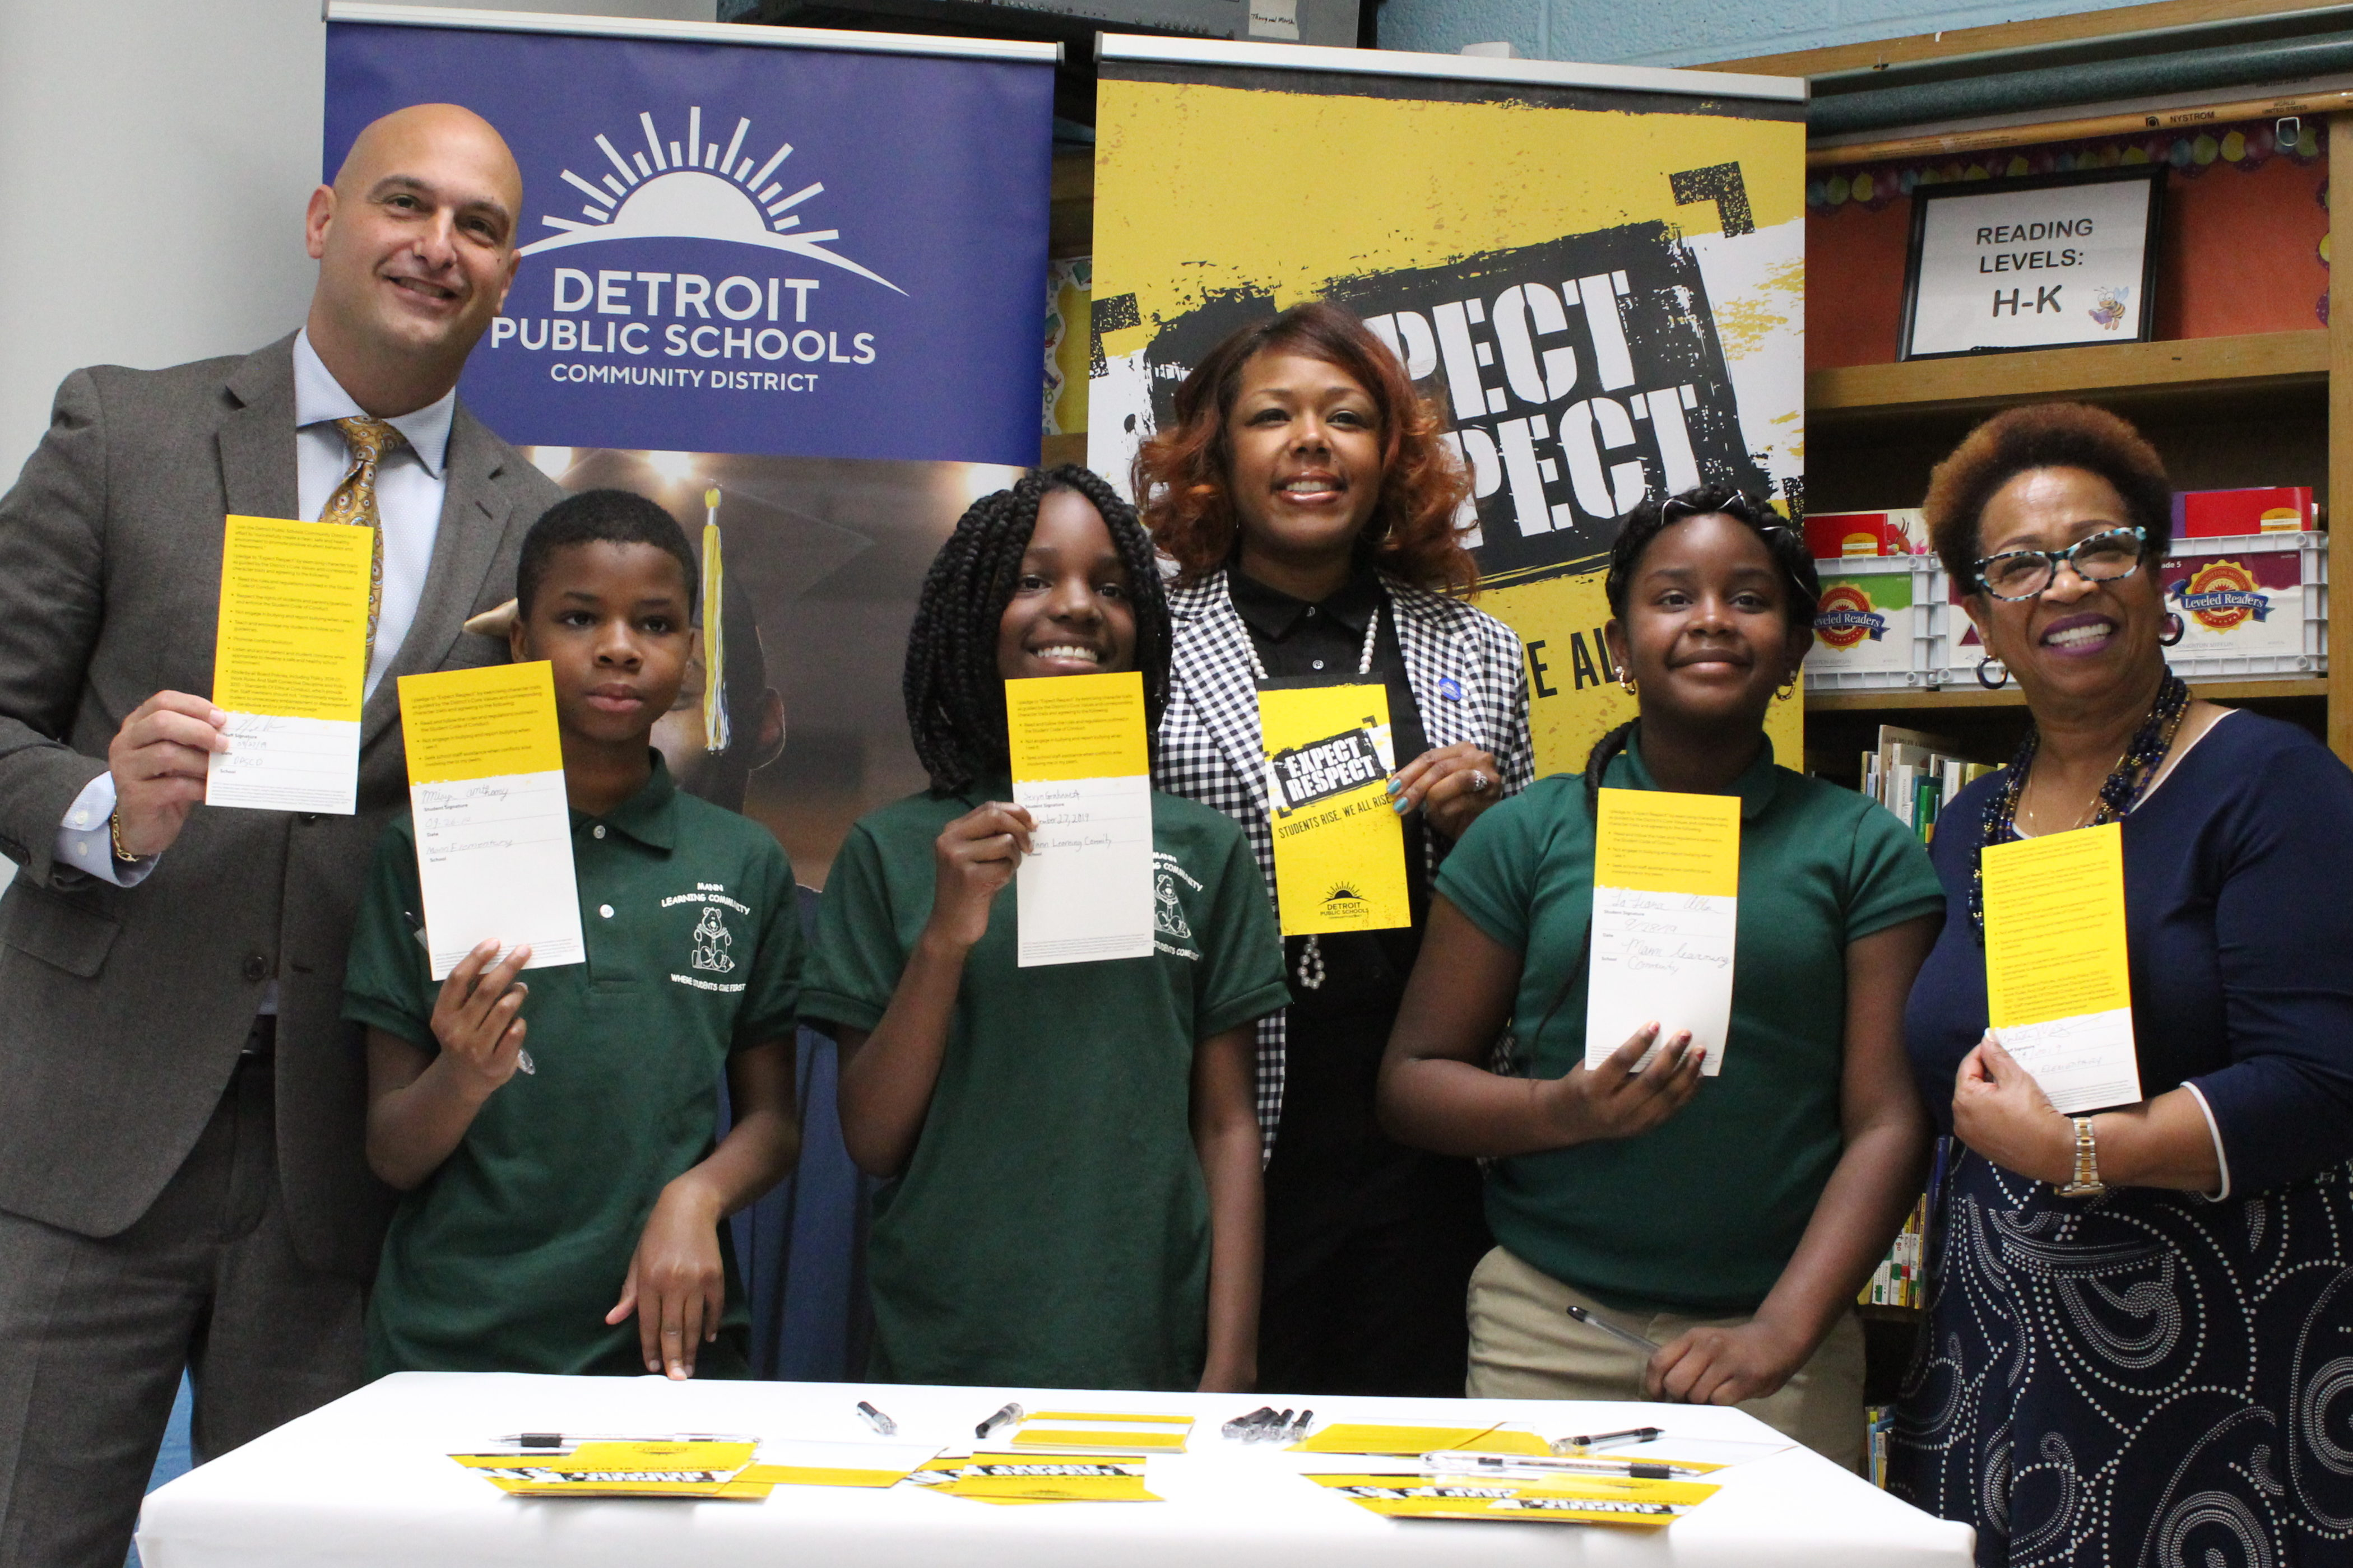 Superintendent Nikolai Vitti (left), and board members Angelique Peterson-Mayberry and Corletta Vaughn (back left and right), signed the Detroit district's new anti-bullying pledge alongside students at Mann Learning Community.